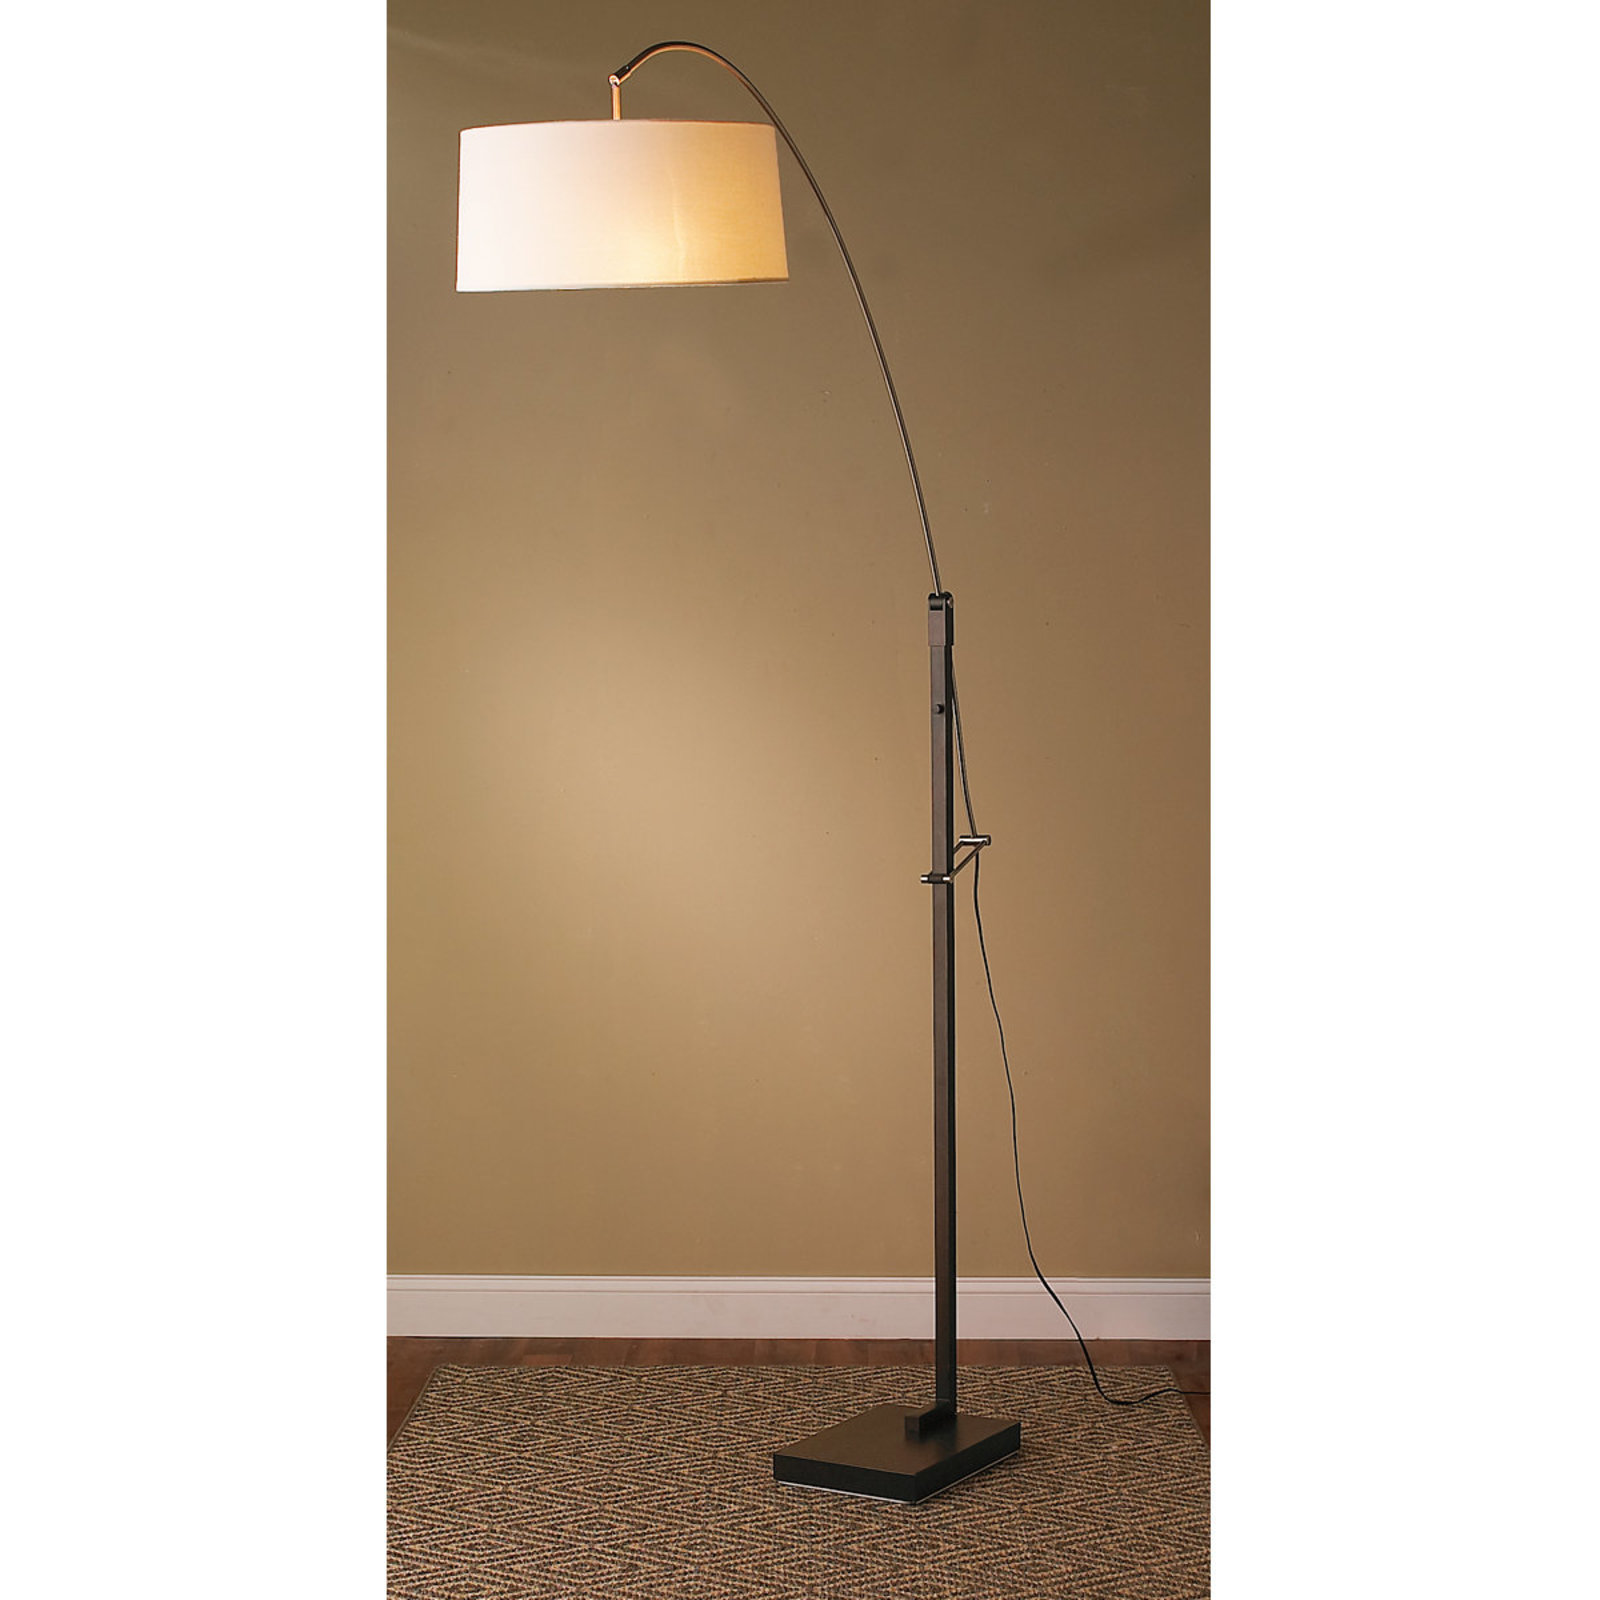 floor lamps modern contemporary designs shades light craftsman arc lamp frosted glass cylinder accent table suitcase side cordless bedside dining room wing chairs grey patterned